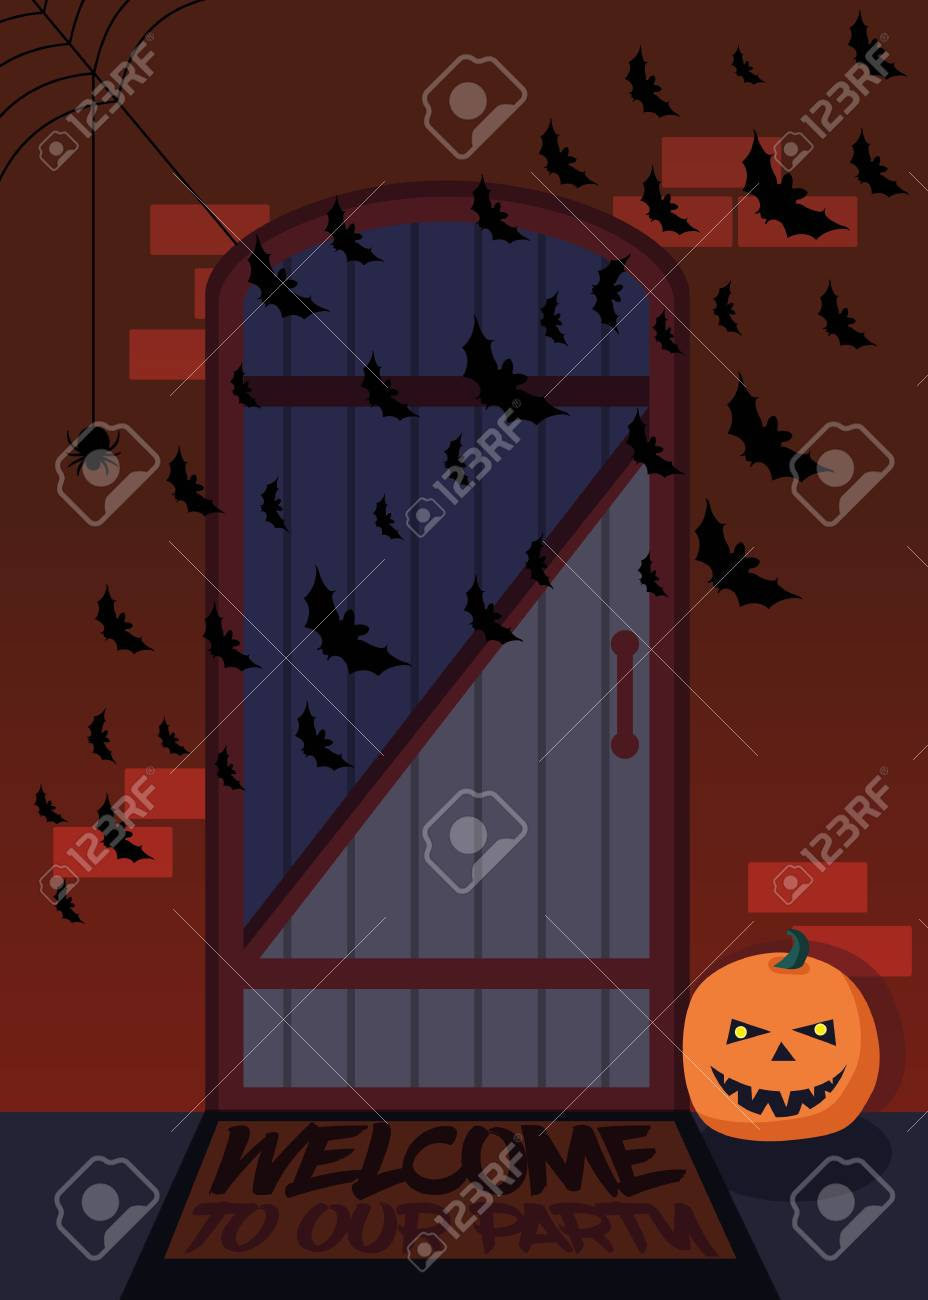 The Entrance Of The House With Bats And Pumpkins Decorated For